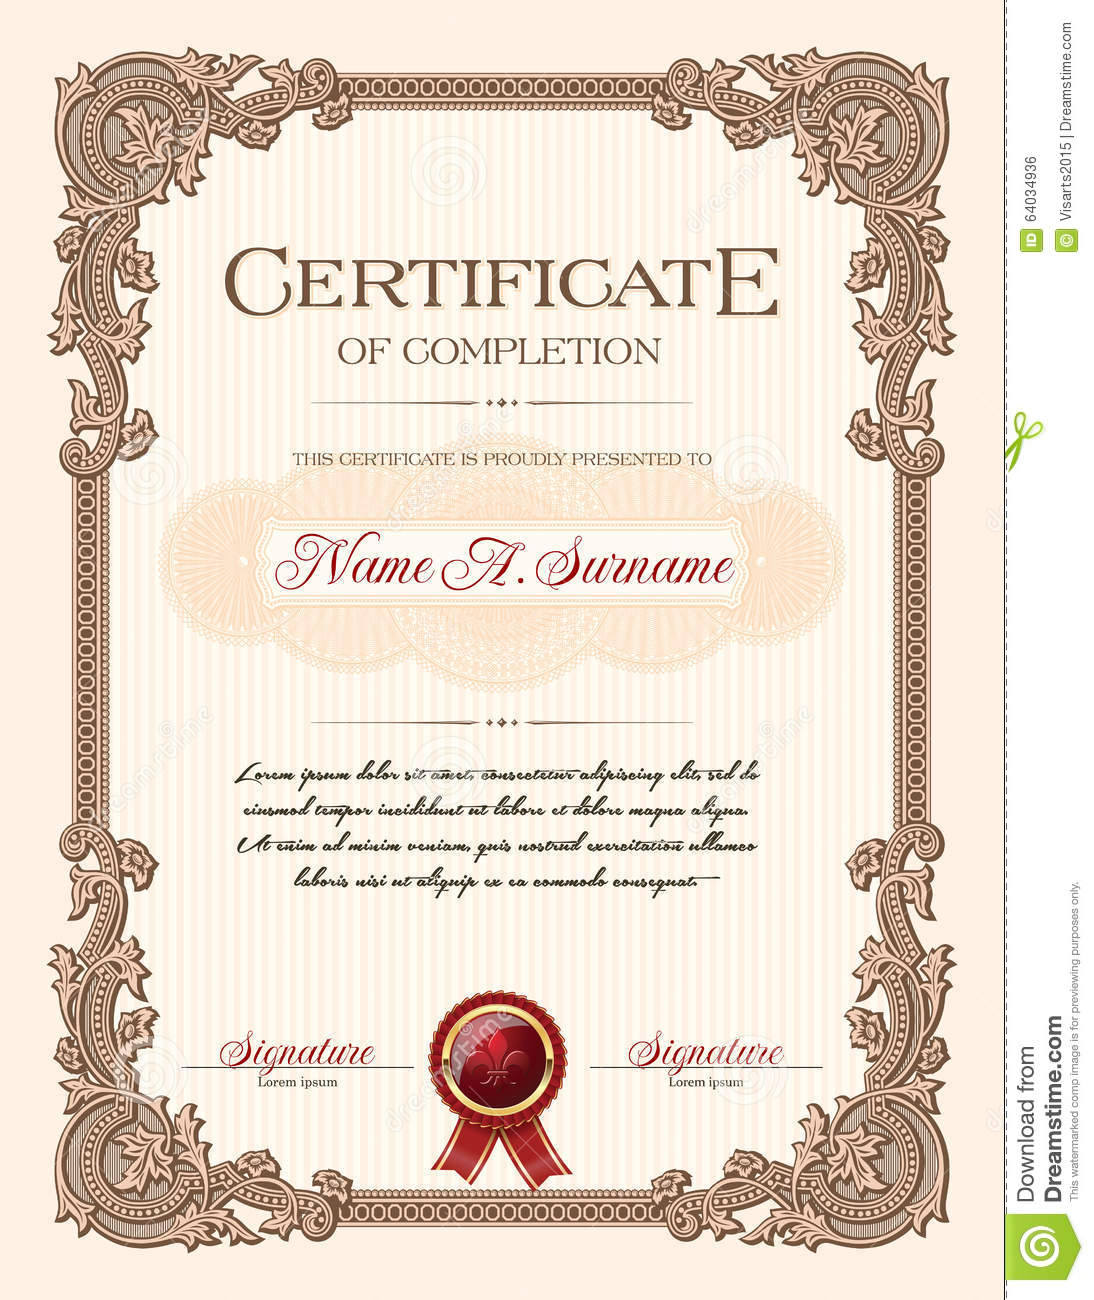 Certificate Of Completion Portrait With Floral Ornament ...